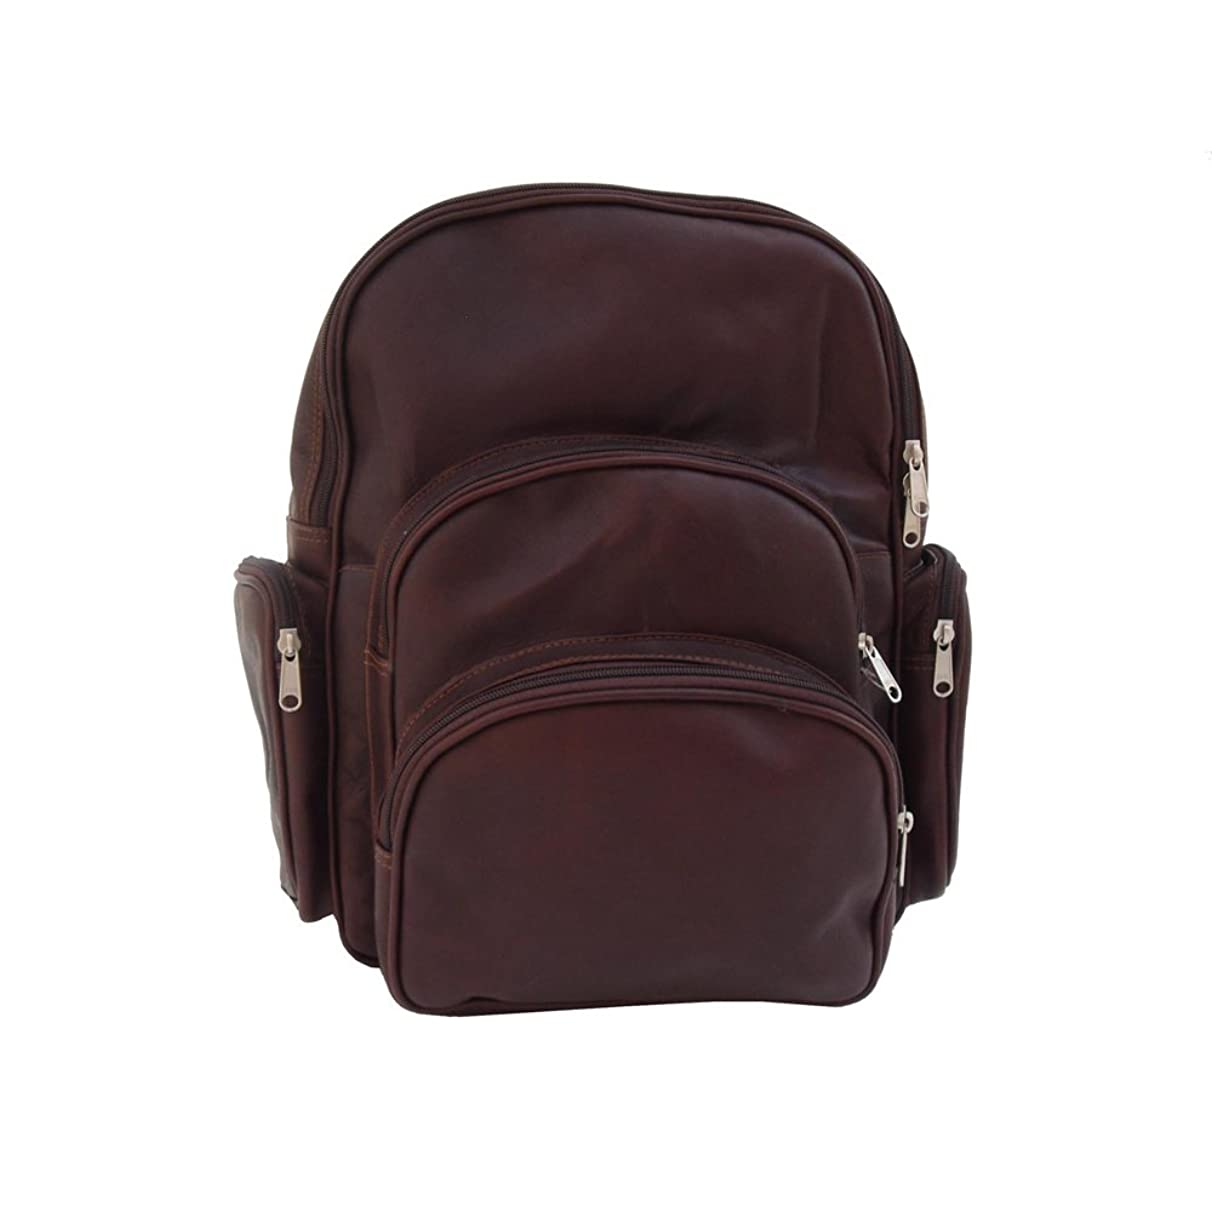 Piel Leather Expandable Backpack, Chocolate, One Size